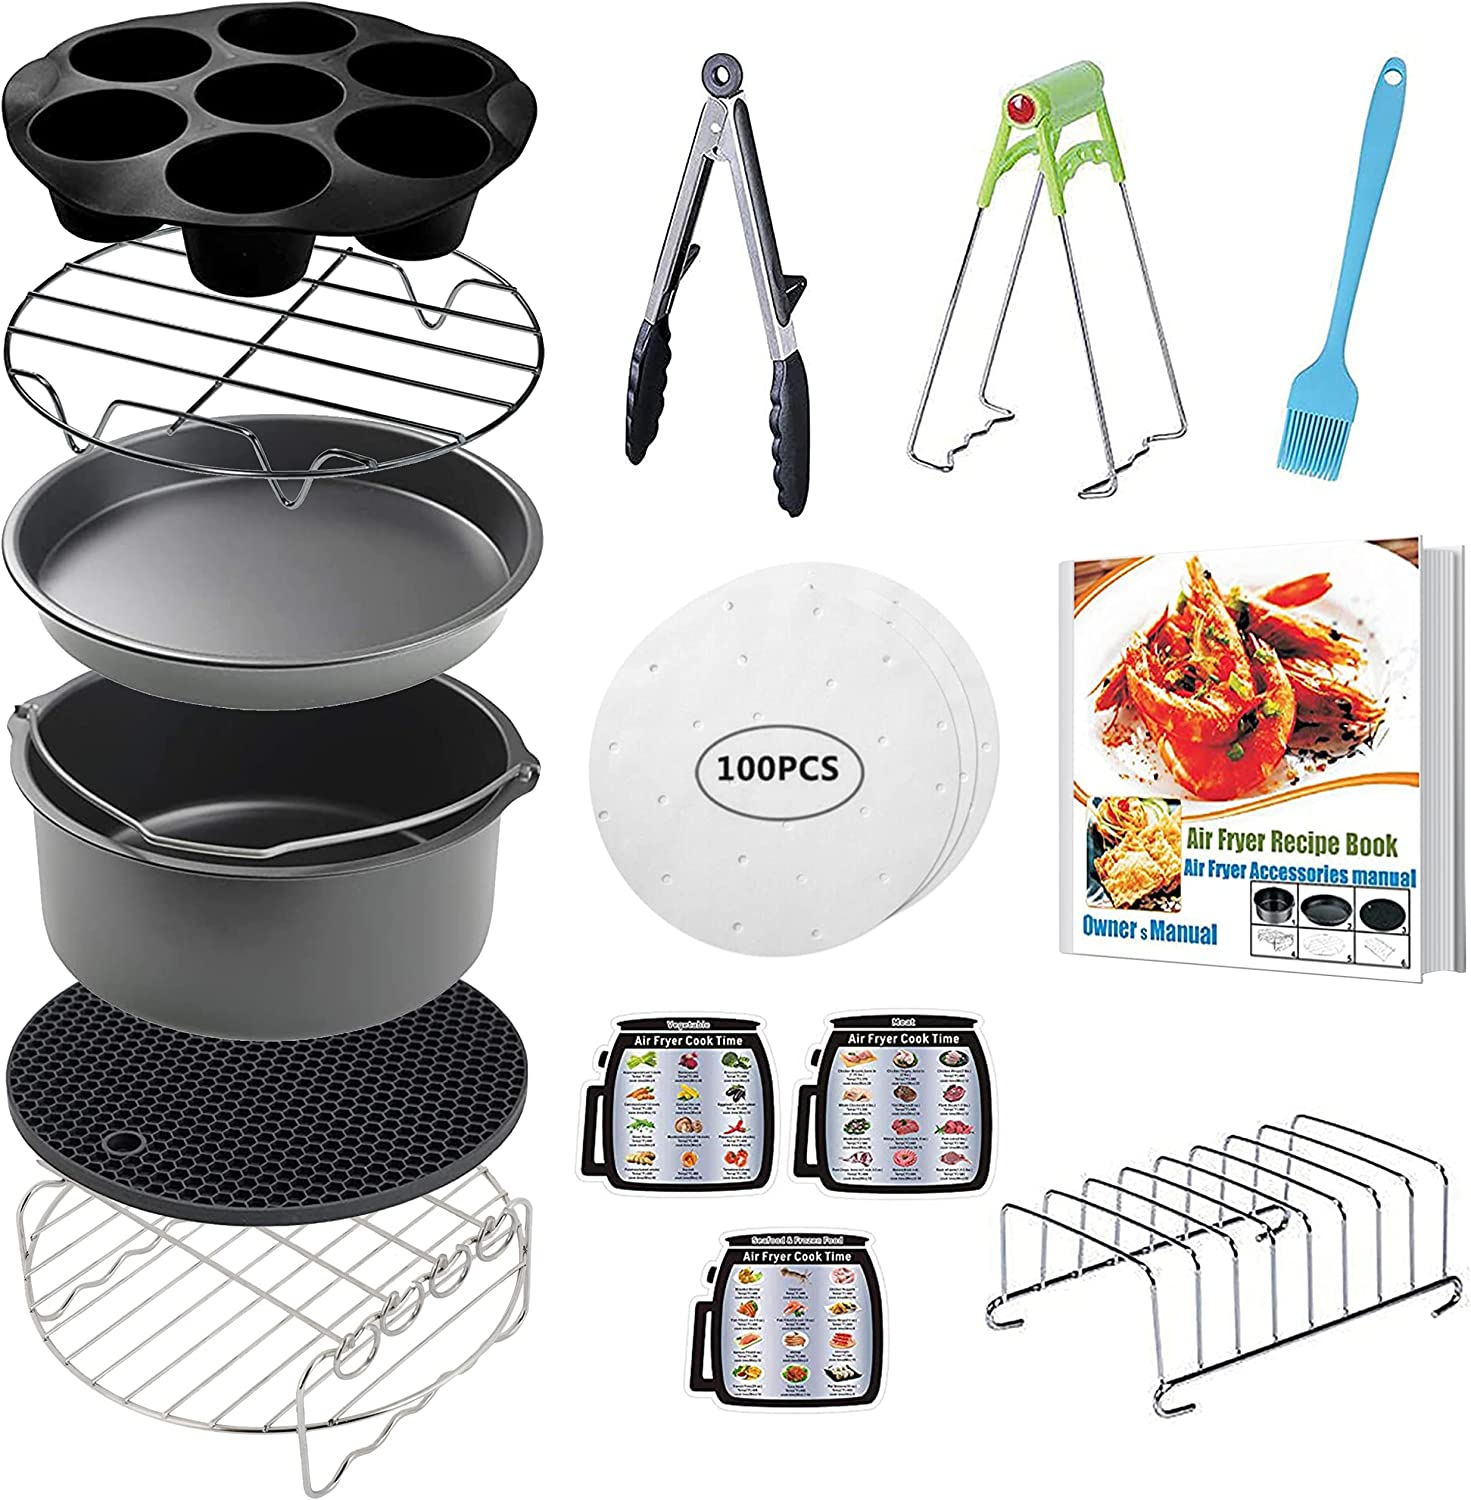 CAXXA 15 PCS 8 Inch XL Accesso Air Deep Accessories Lowest price Max 82% OFF challenge Fryer